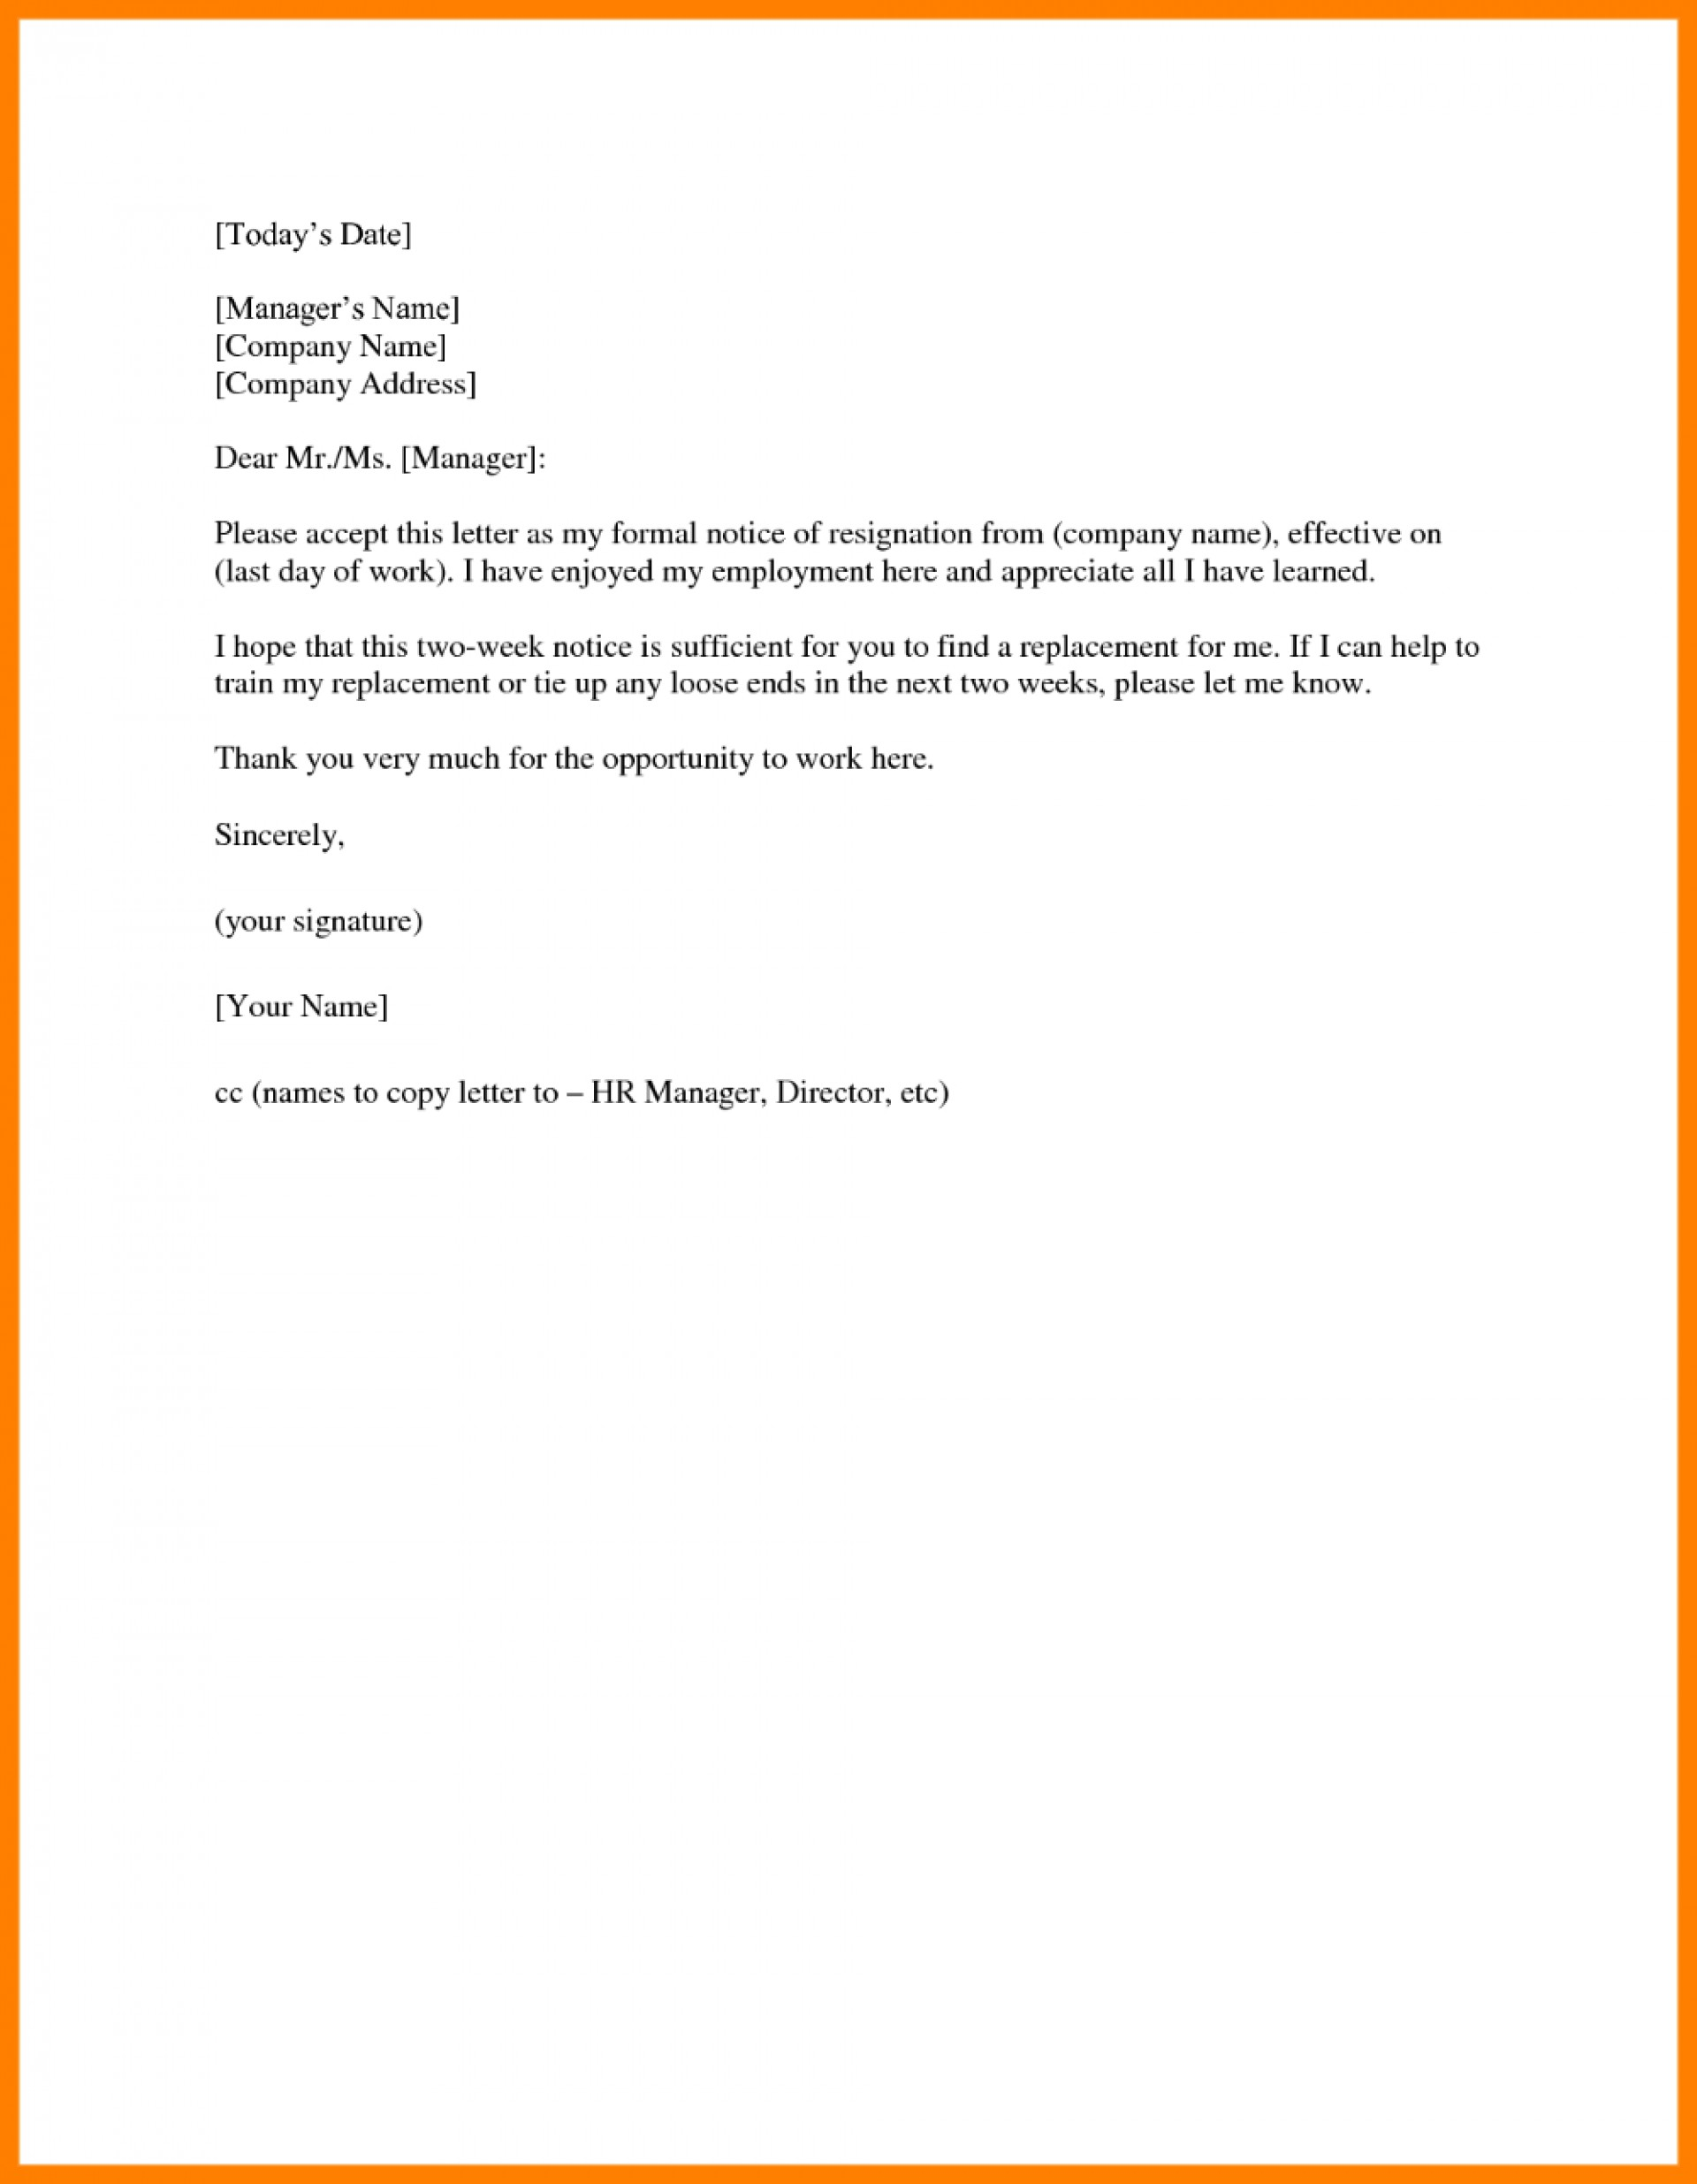 Two Weeks Notice Letter Template Word from www.addictionary.org